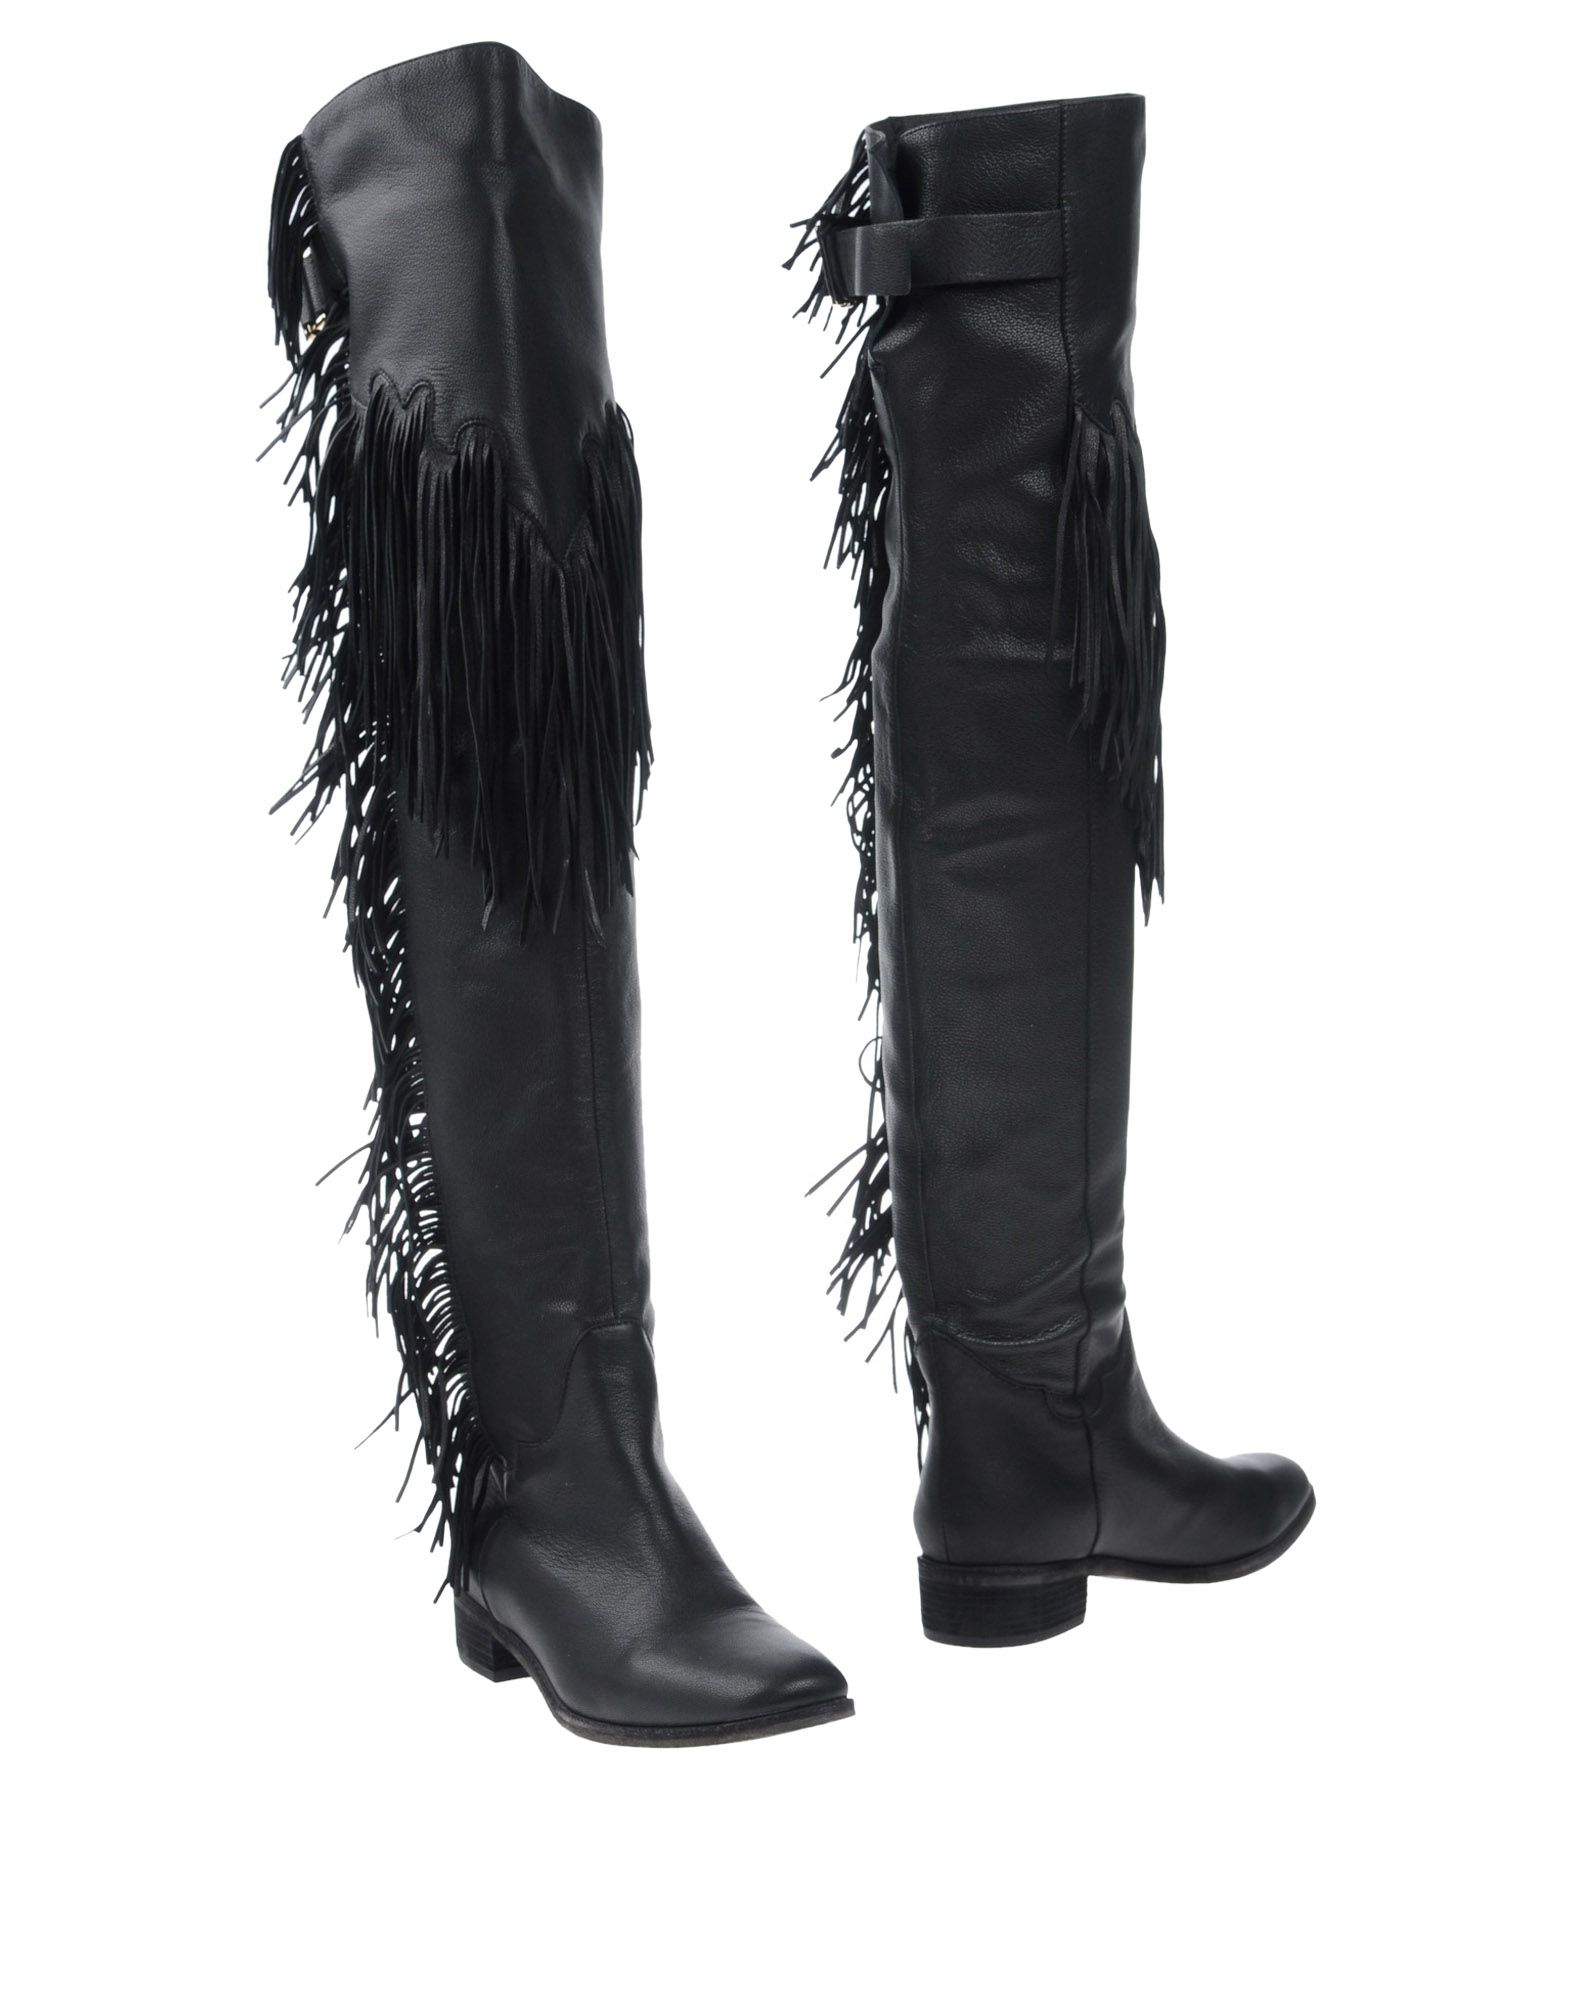 Bottes See By Chloé Femme - Bottes See By Chloé sur